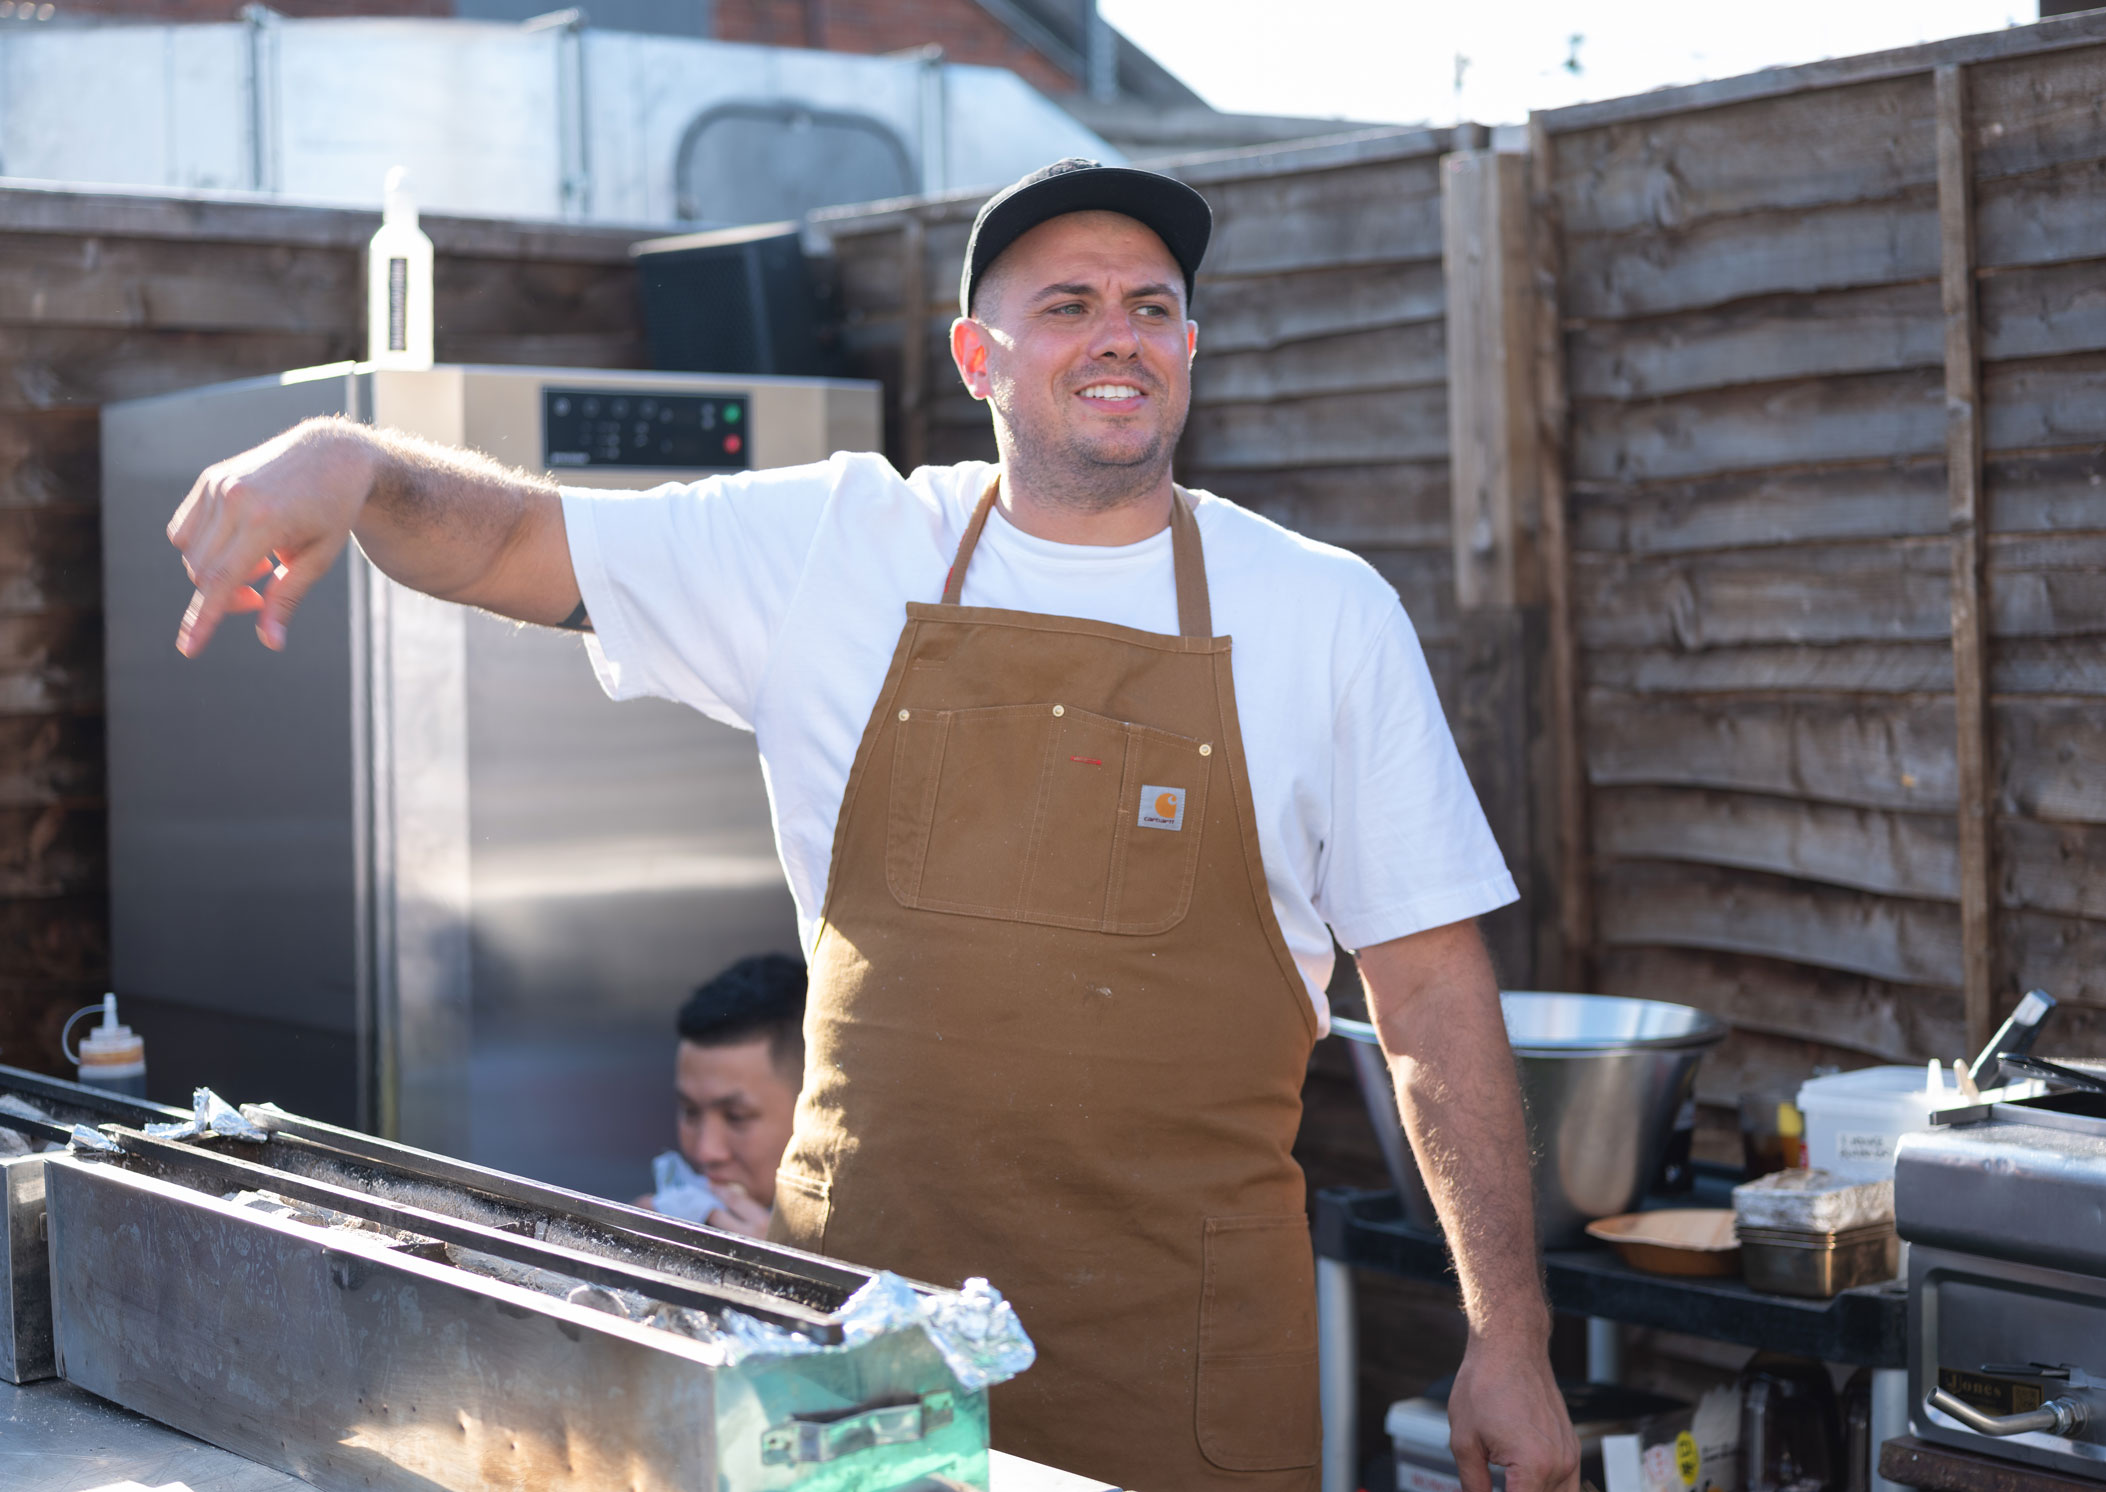 Matt Abergel cooking at Shoreditch House during his trip to London last week